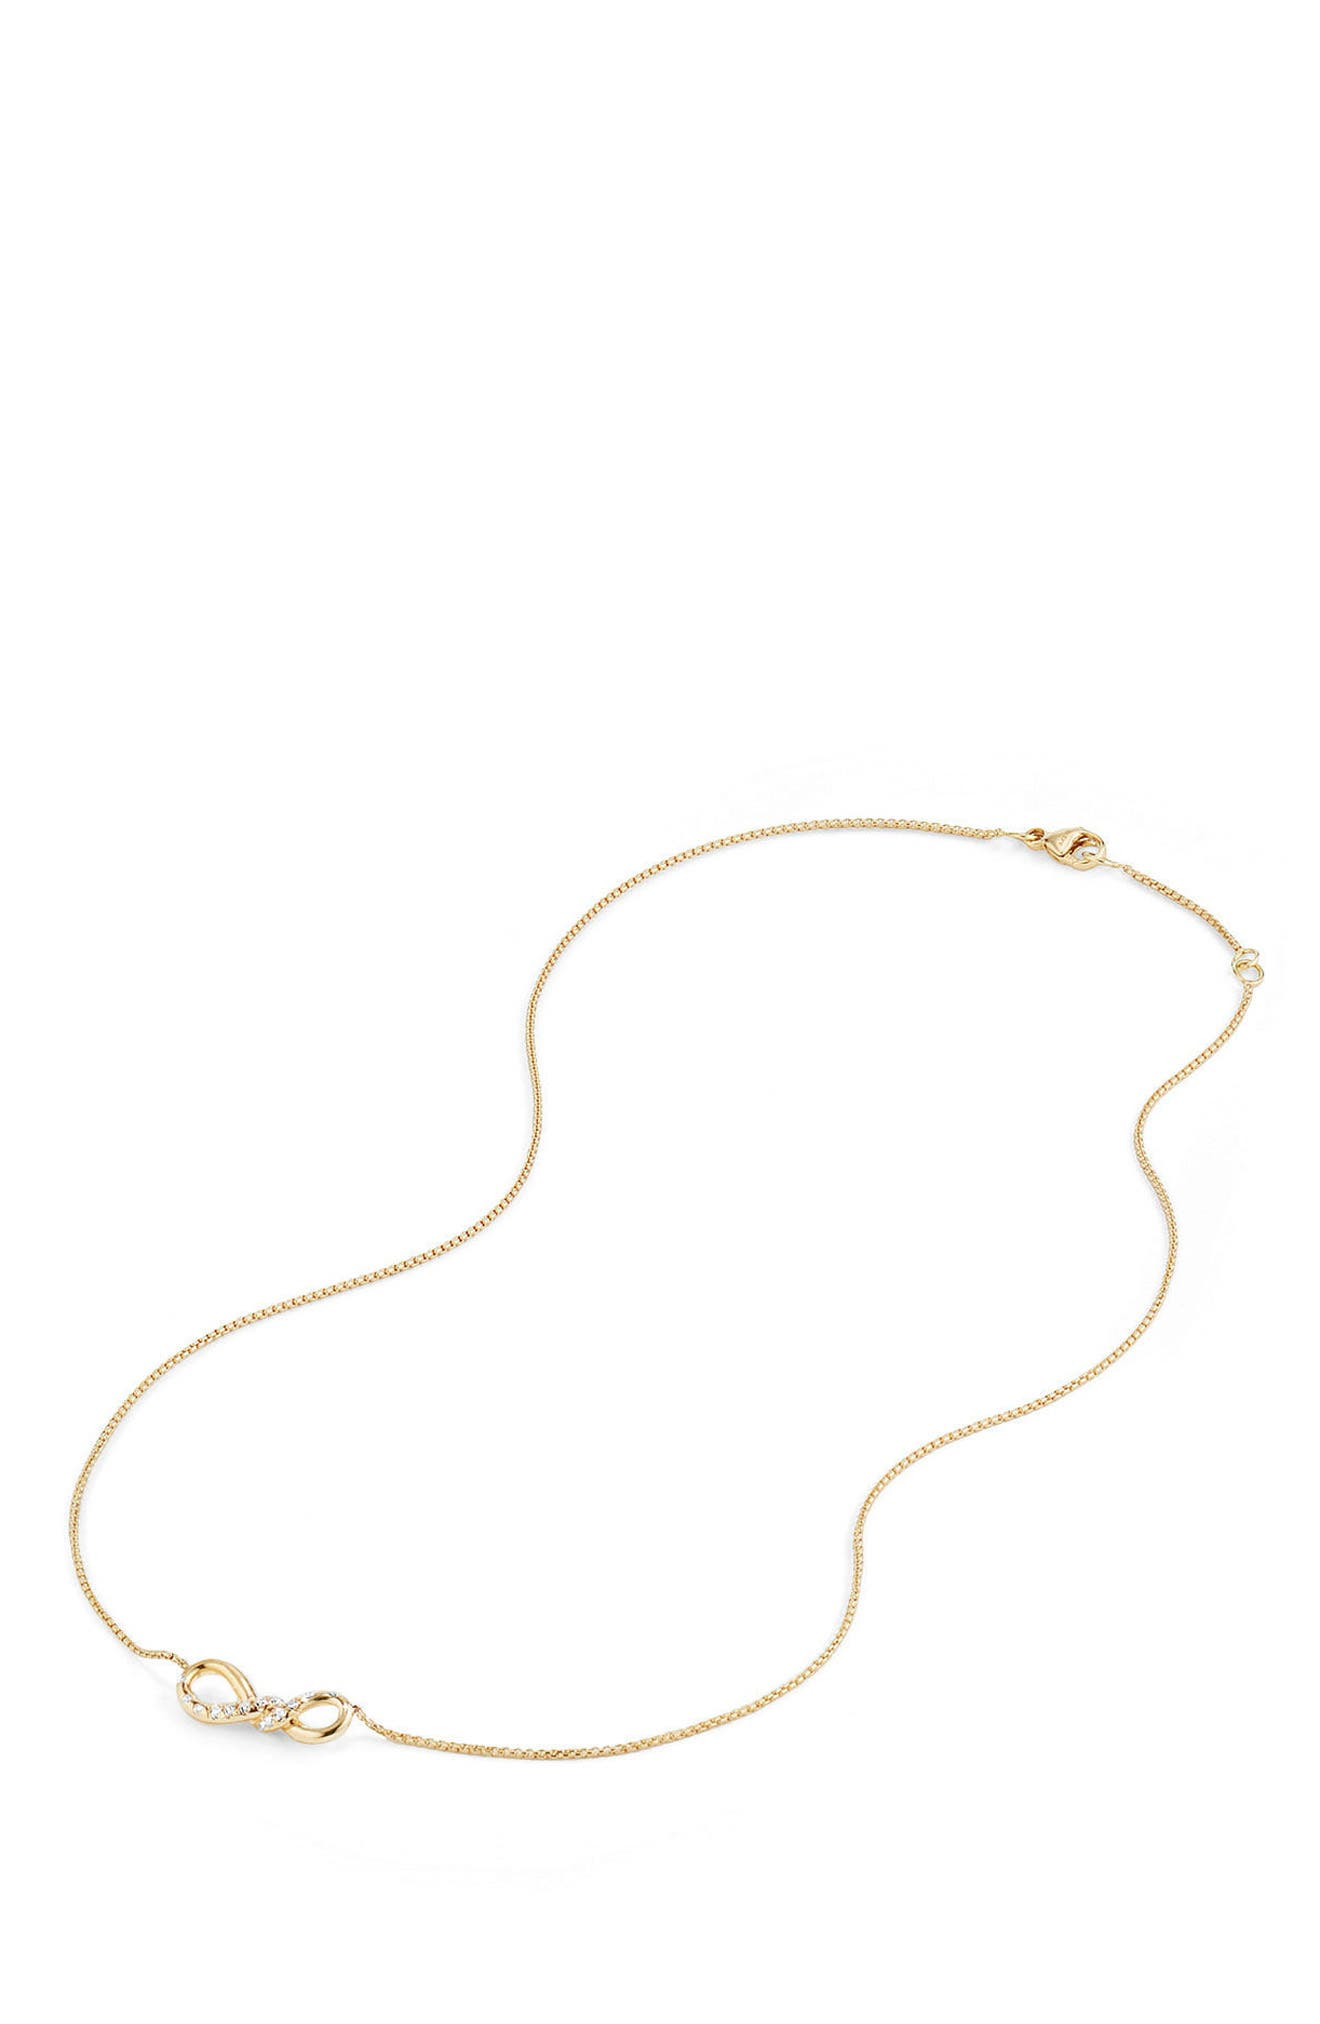 Continuance Pendant Necklace in 18K Gold with Diamonds,                             Alternate thumbnail 4, color,                             YELLOW GOLD